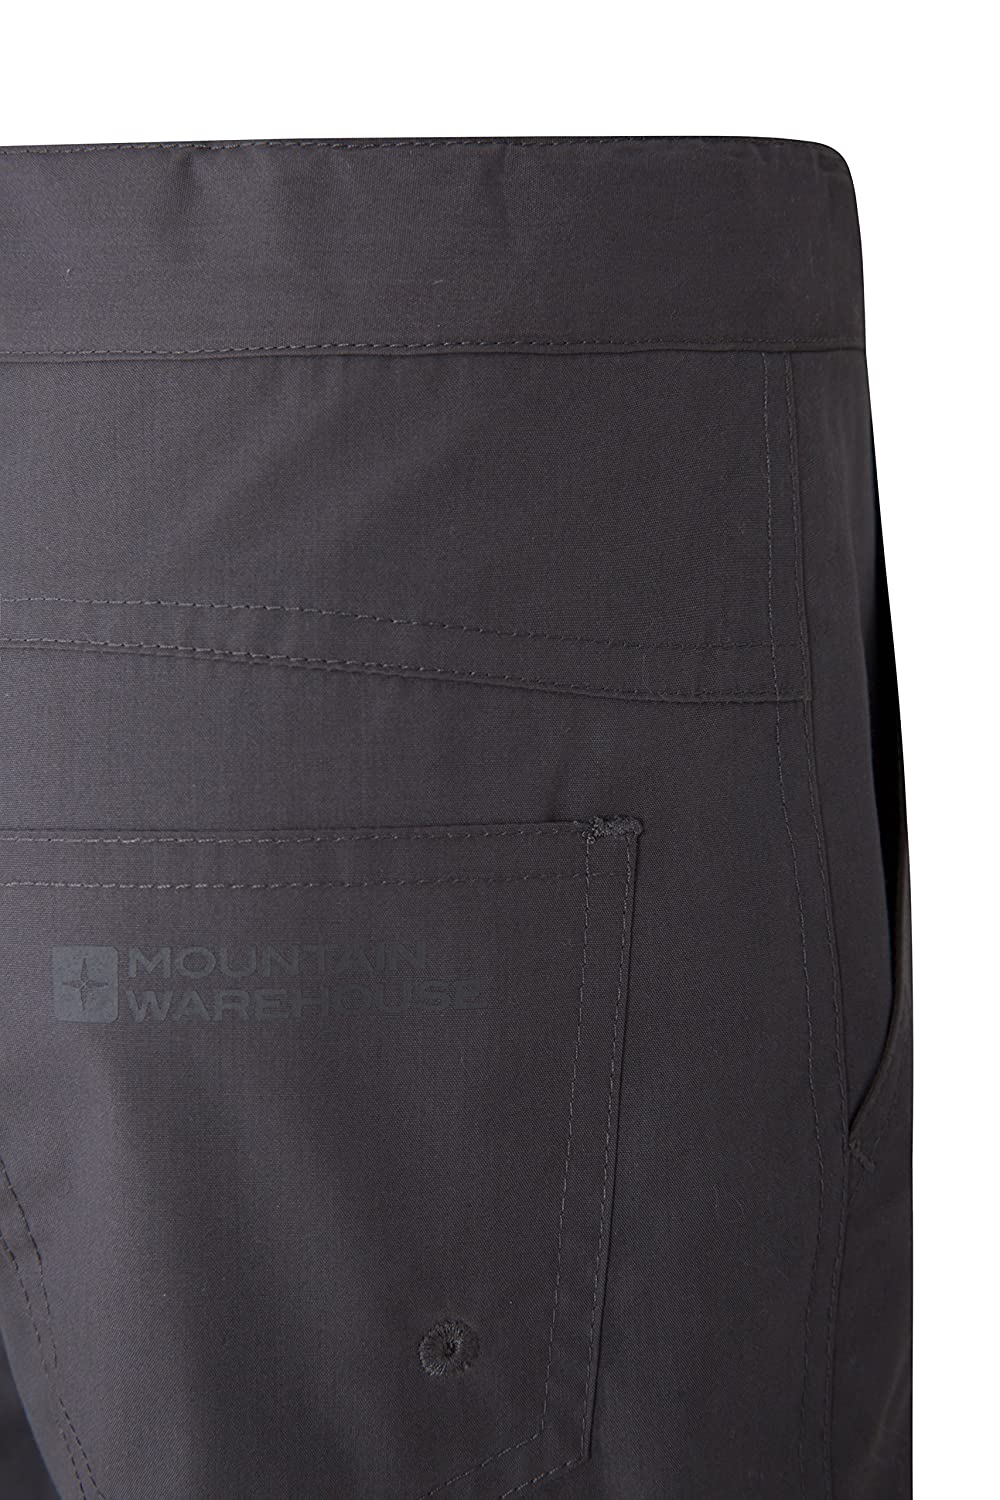 Mountain Warehouse Spring Trek Youth Trousers Fast Dry Kids Pants